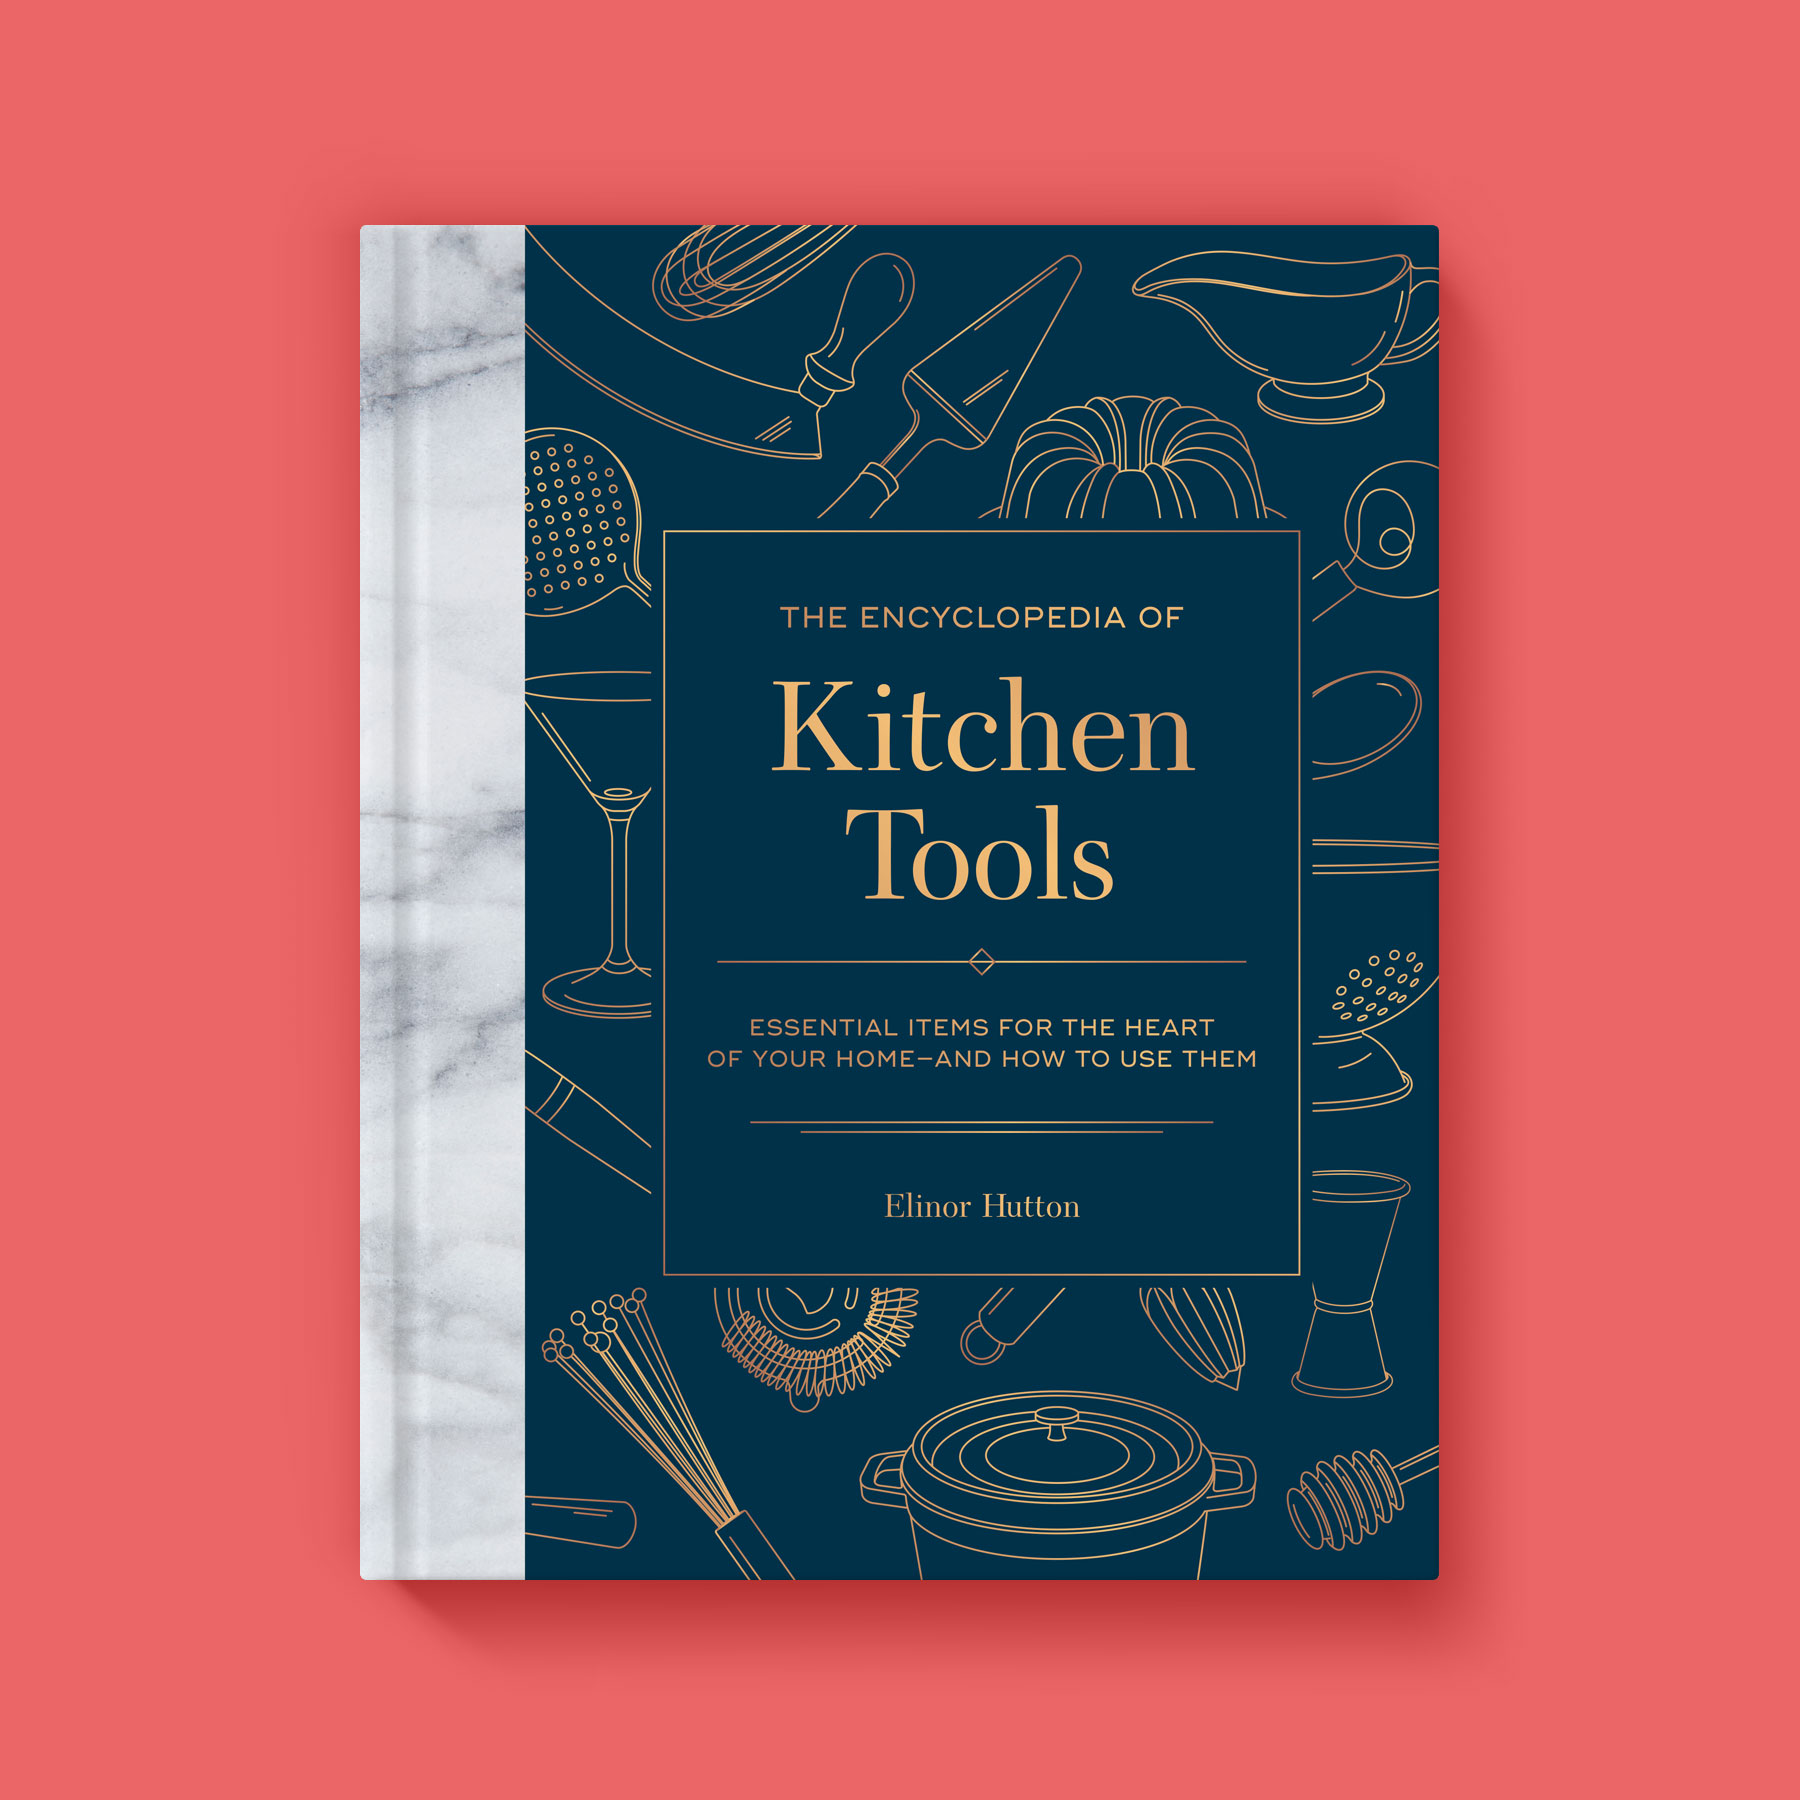 The Encyclopedia of Kitchen Tools front cover